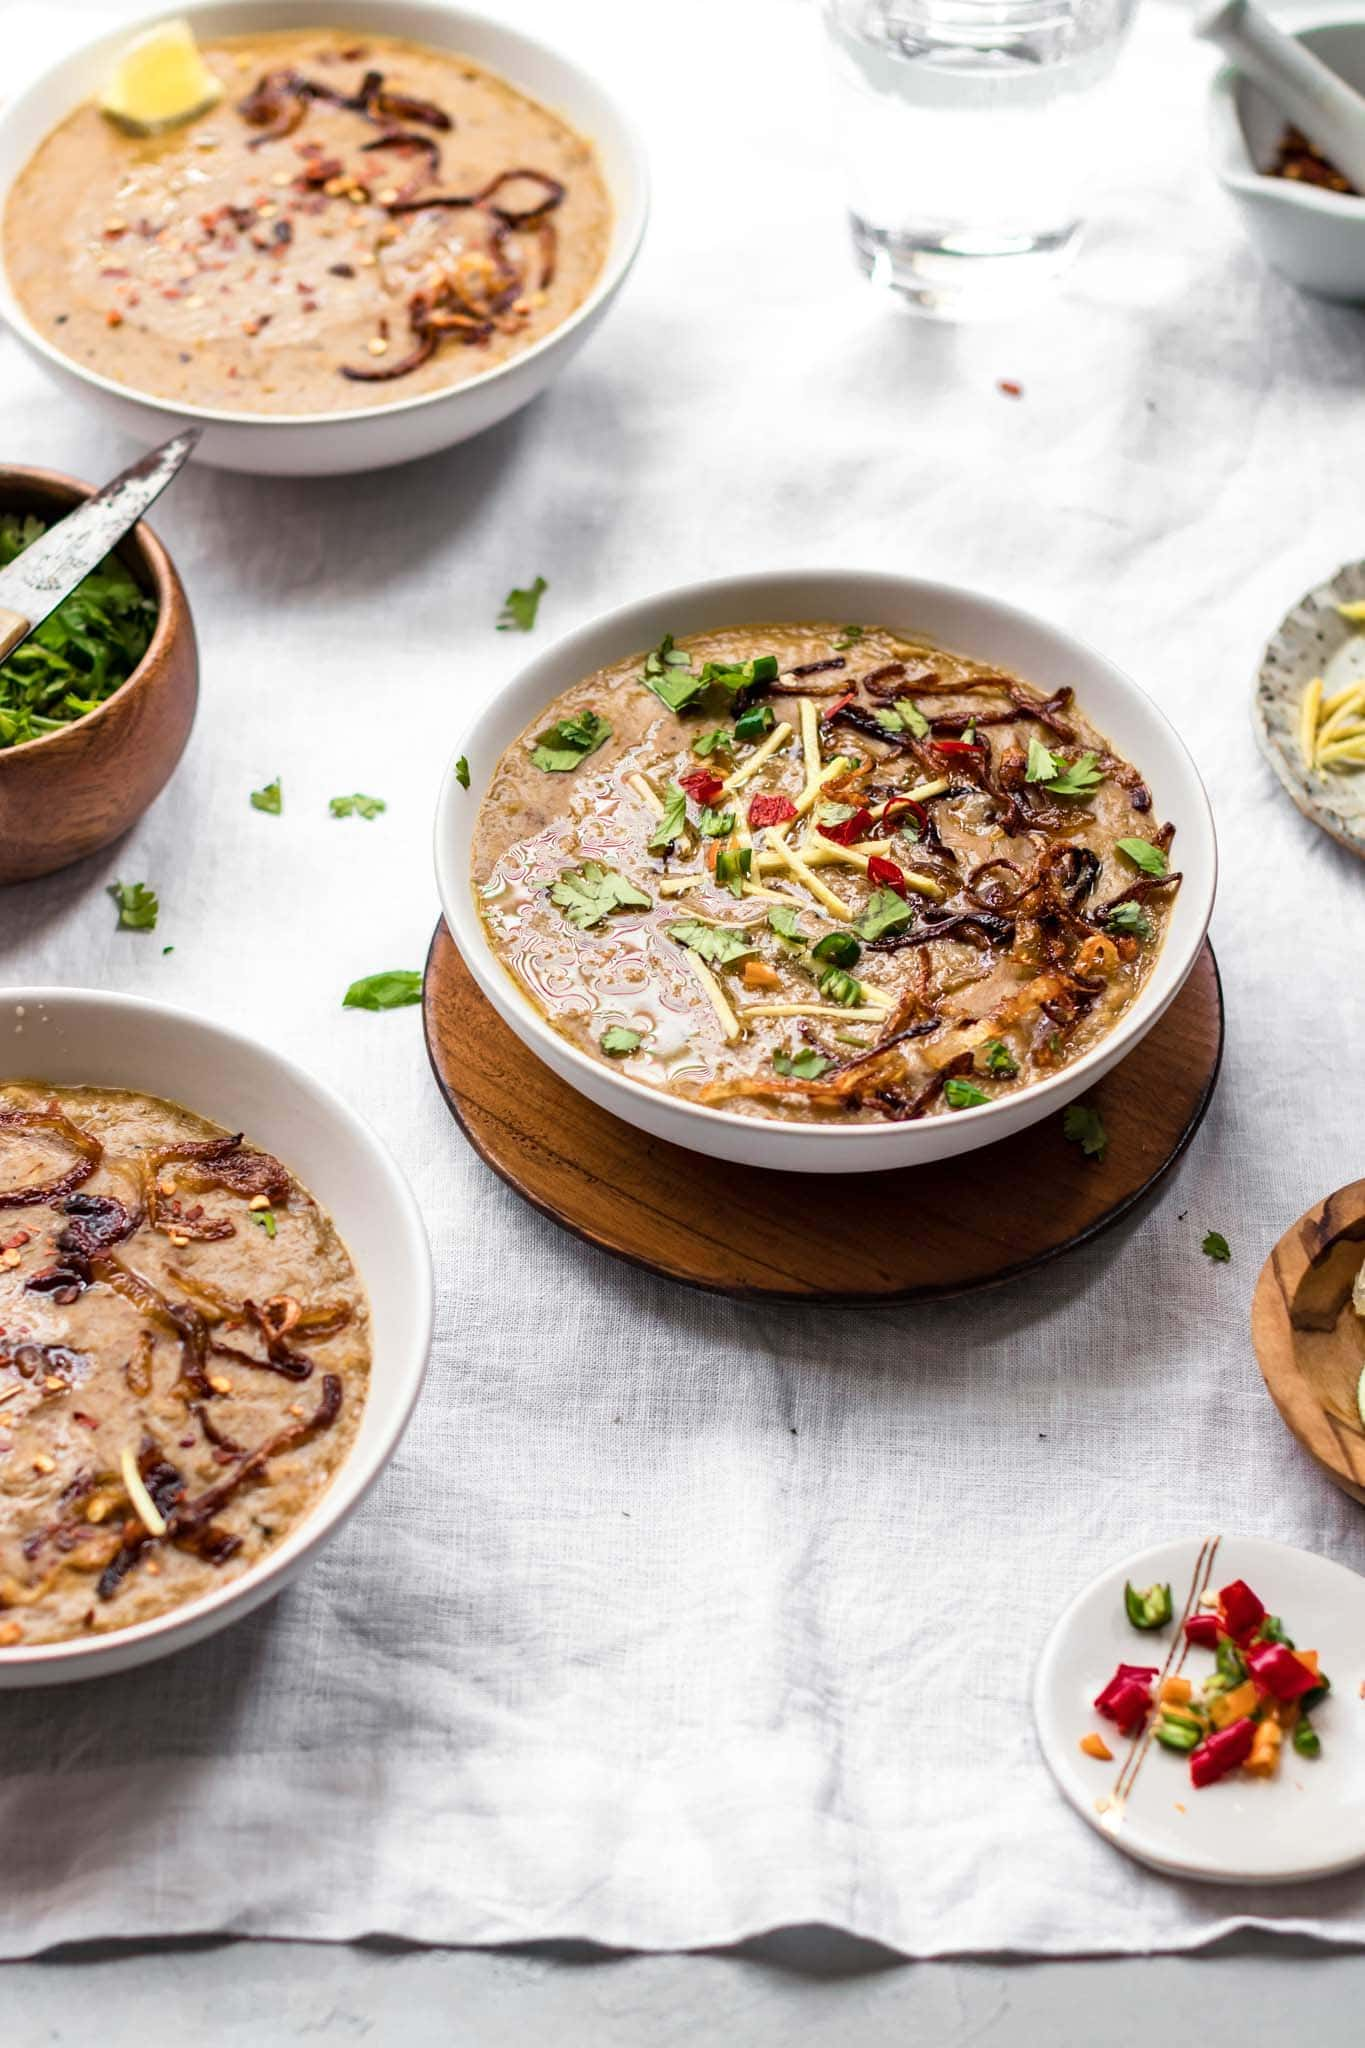 Haleem (Pakistani beef and lentil stew) in a white bowl with garnishing on top